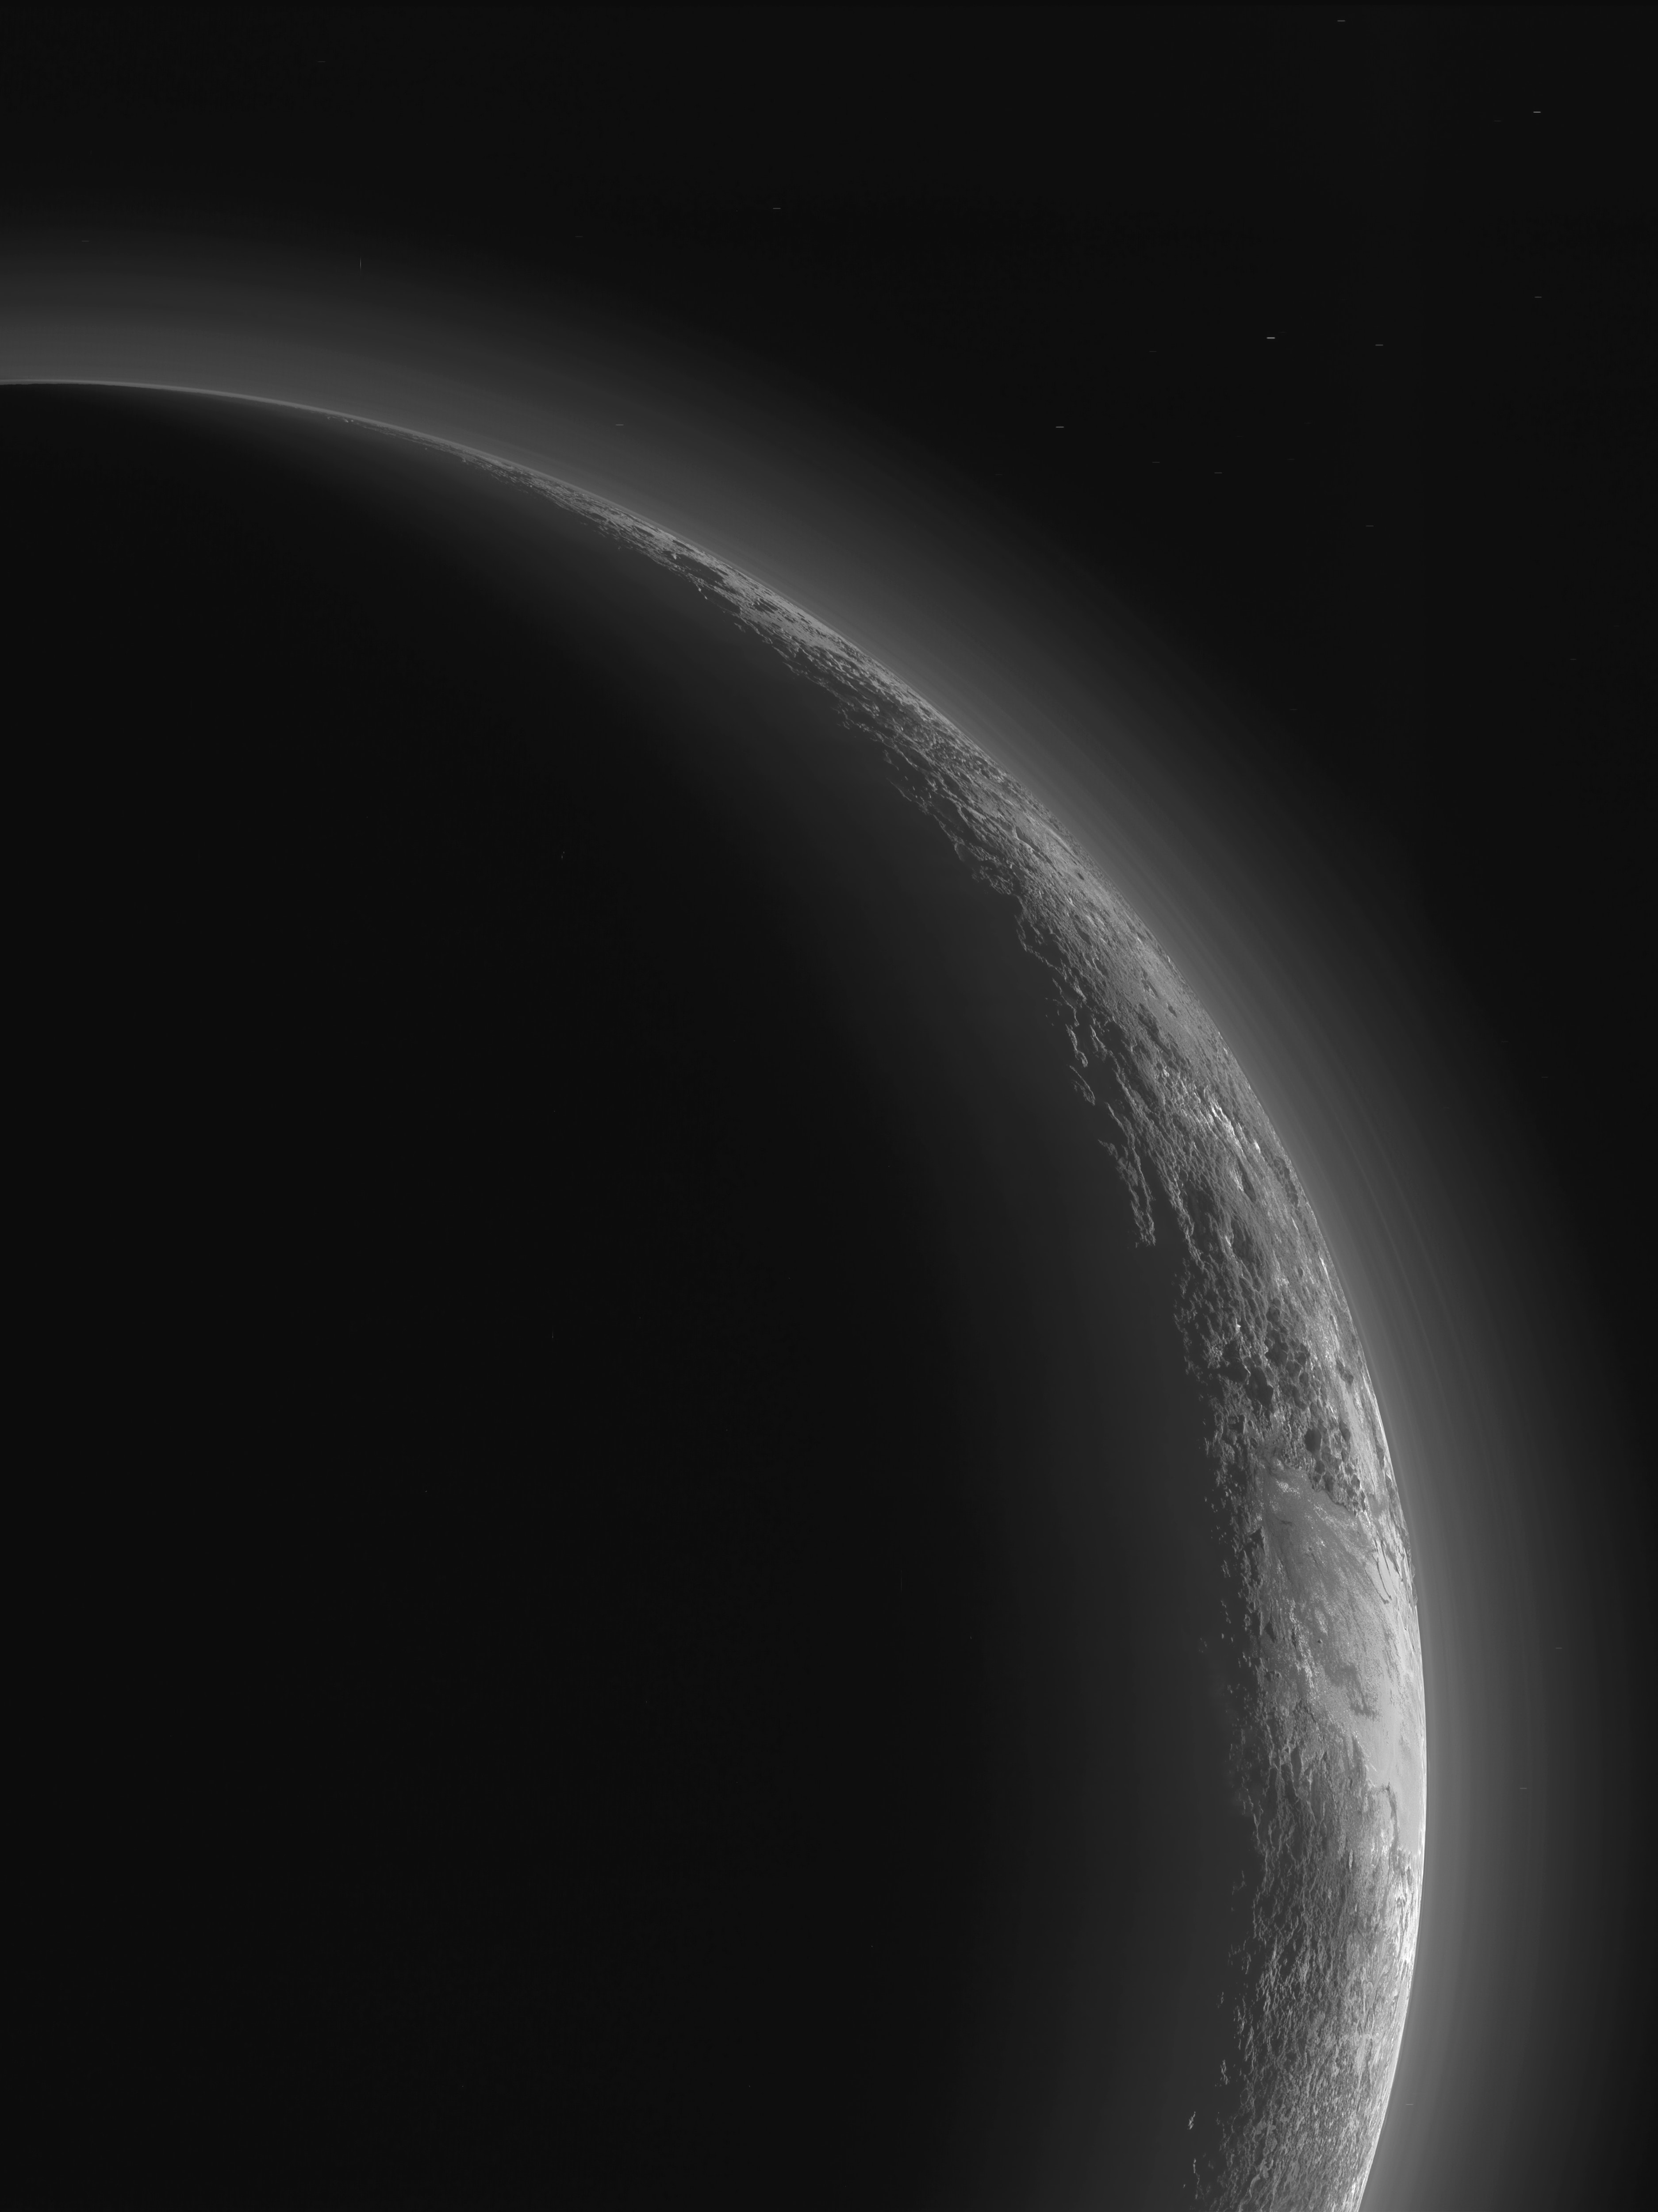 The New Horizons team released an image of Pluto's crescent, gathered from New Horizons' flyby of Pluto in 2015.